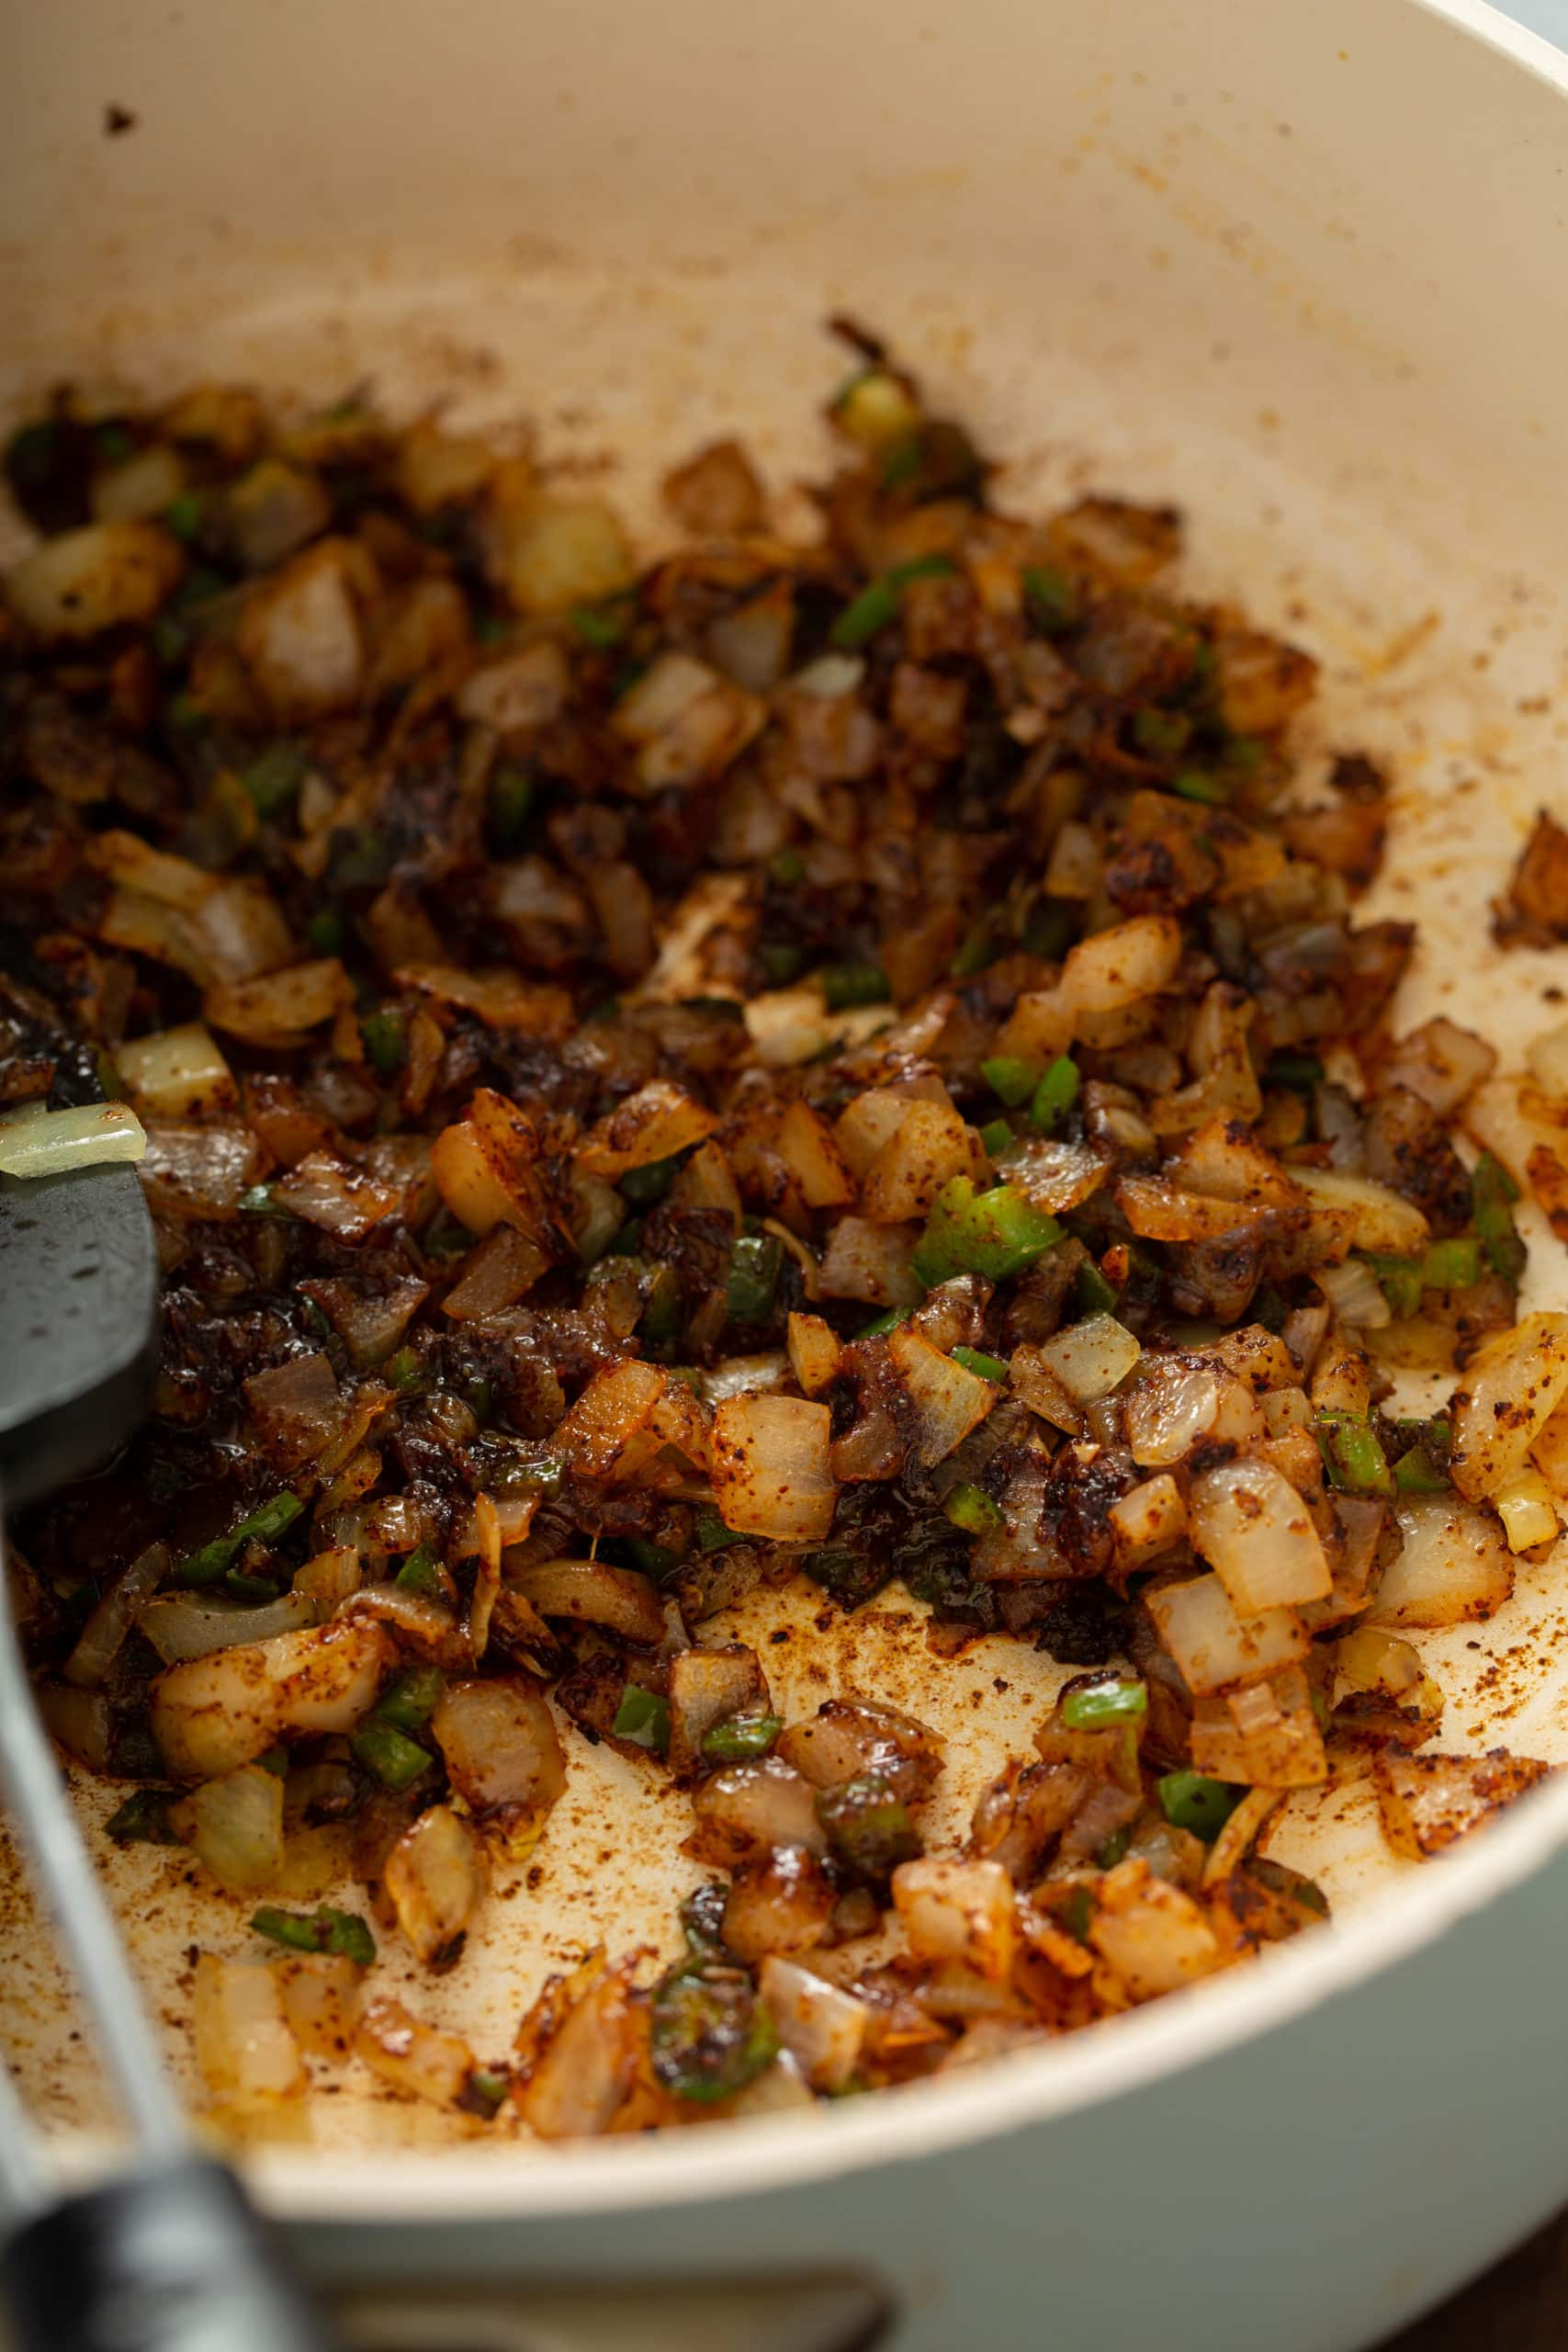 A skillet with sauted onions, jalapenos, and garlic.